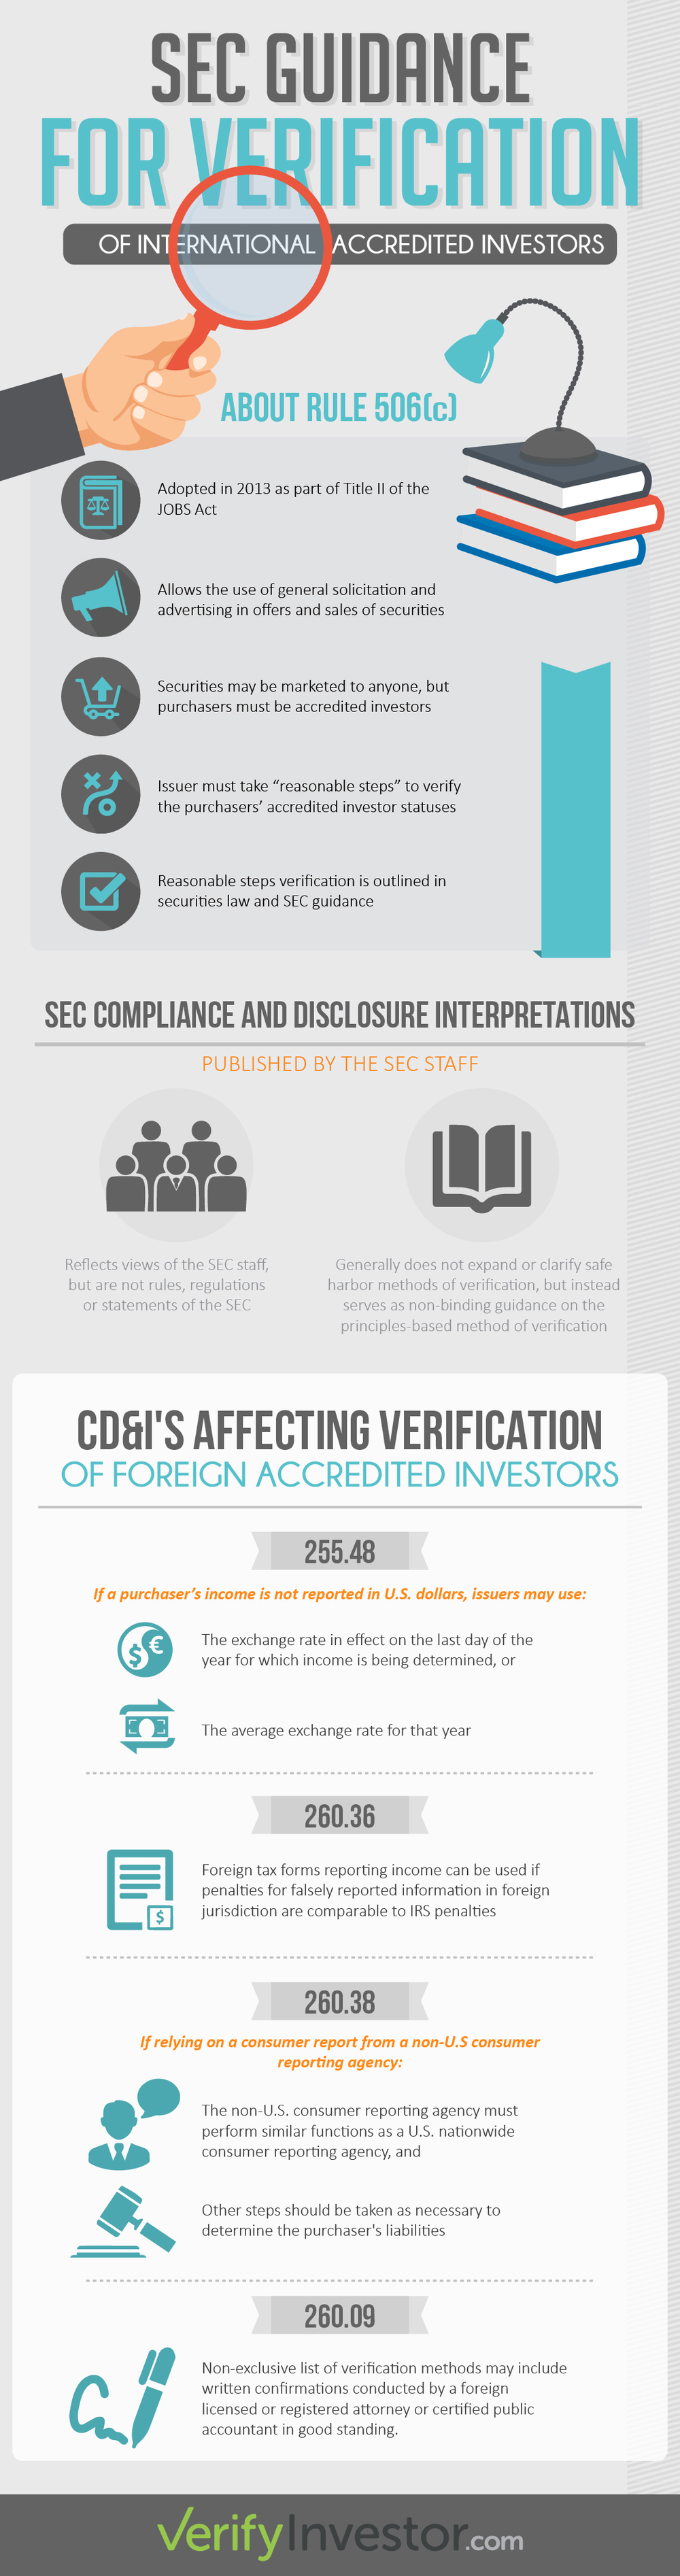 Our Infographic Featured on CrowdfundInsider:  http://www.crowdfundinsider.com/2016/02/82101-verification-of-international-accredited-investors-what-you-need-to-do/